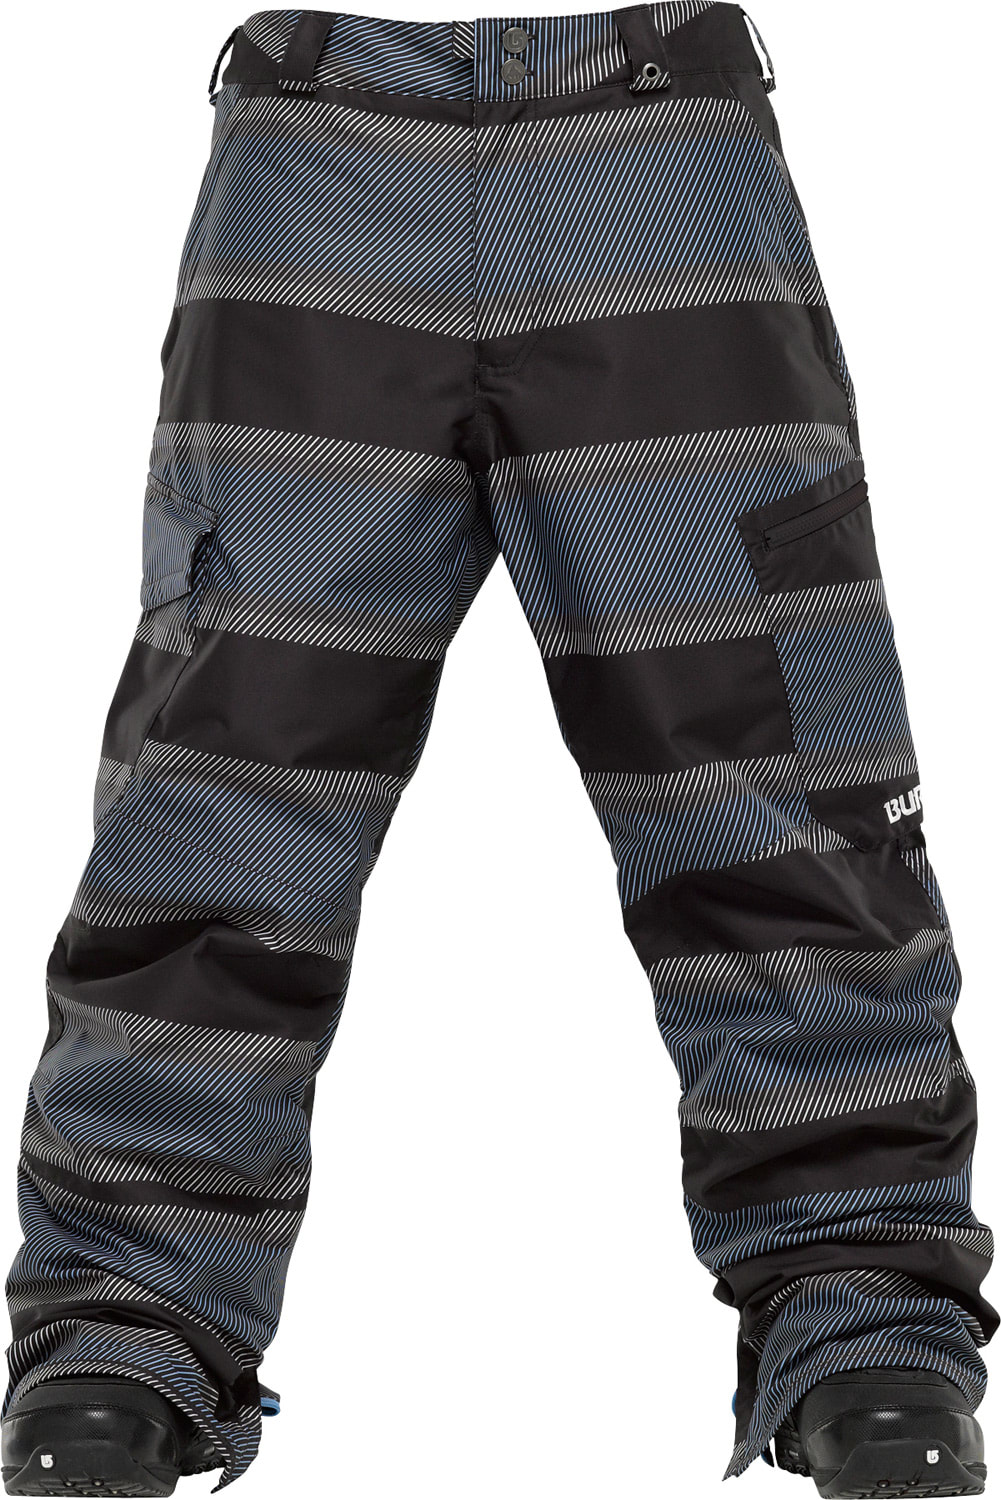 Shop for Burton Cargo Snowboard Pants Blue 23 Pandhandle Print - Men's